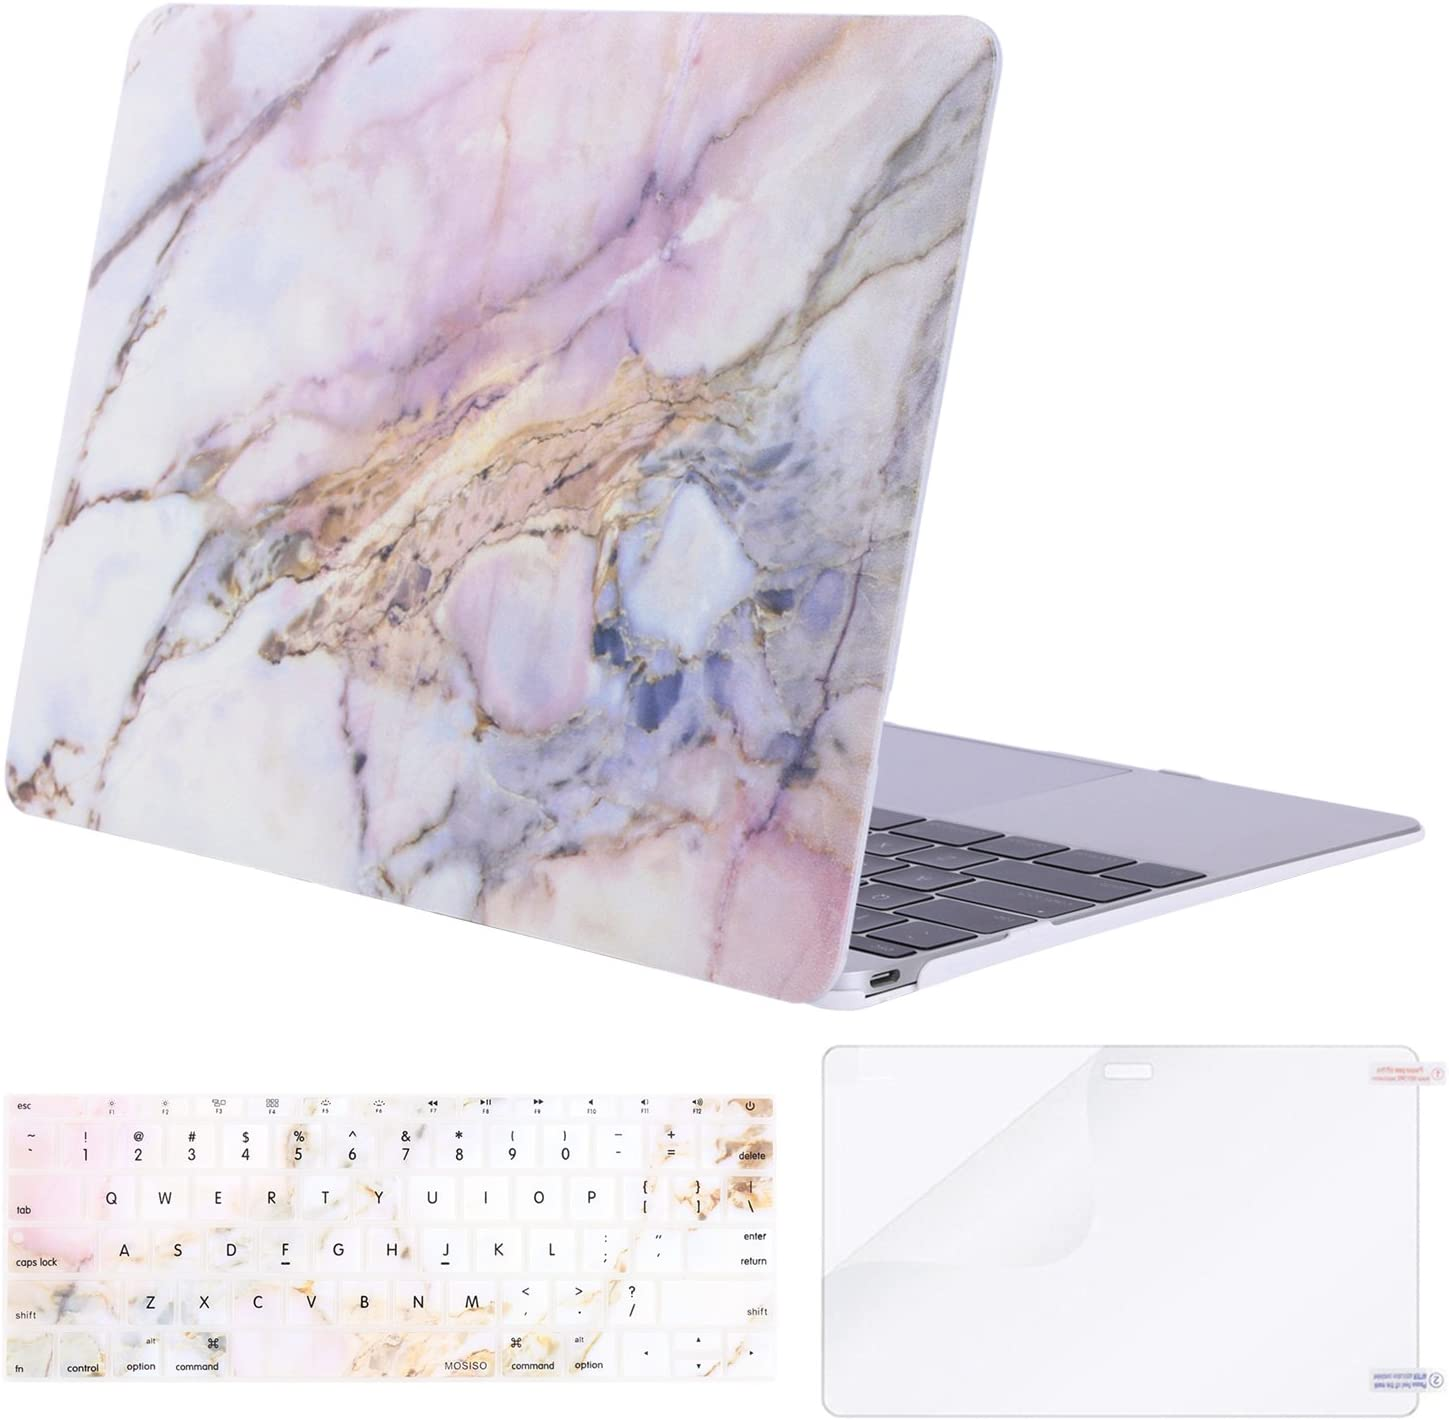 MOSISO MacBook 12 inch Case (Model A1534, Release 2017 2016 2015), Plastic Pattern Hard Shell & Keyboard Cover & Screen Protector Compatible with MacBook 12 inch with Retina Display, Colorful Marble